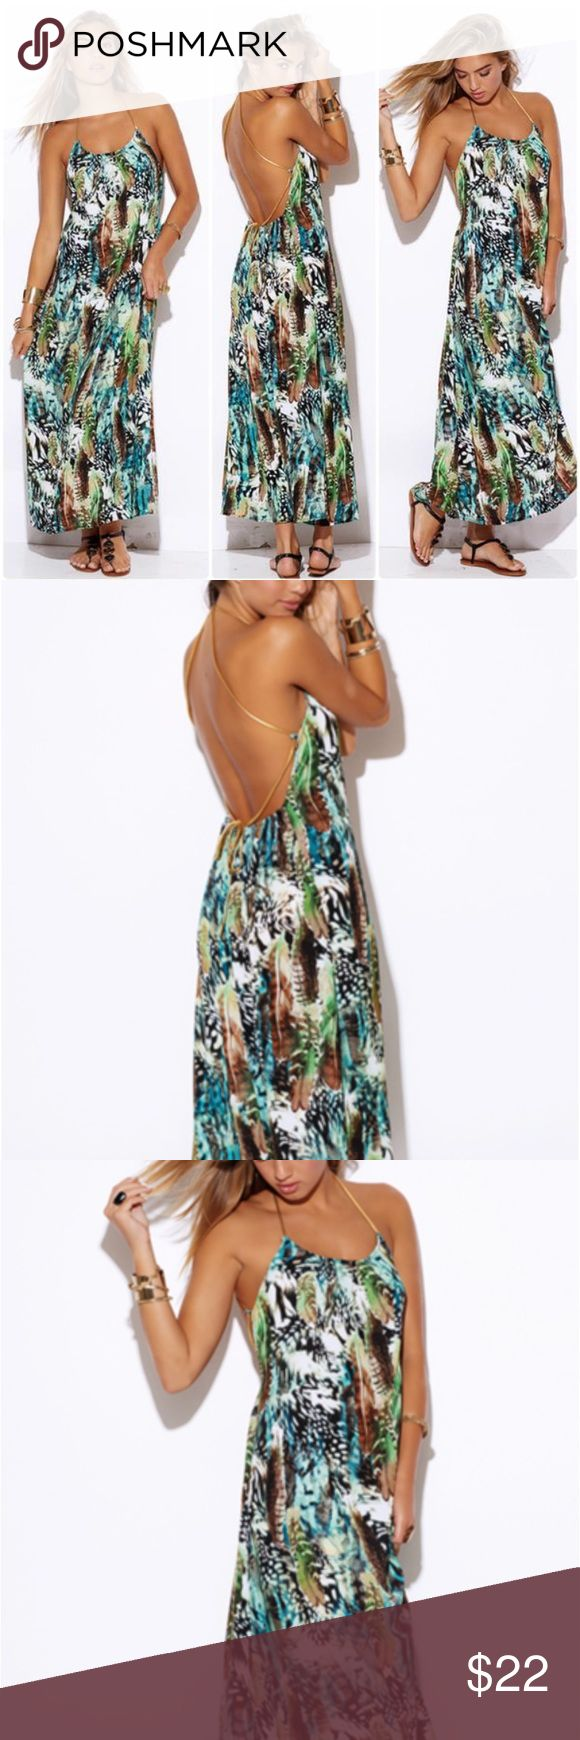 Bermuda Back-Less Maxi Dress Show off your sun-kissed skin with this gorgeous backless maxi dress with gold leatherette straps! This maxi dress has a pretty print, a comfortable fit, and is made of a stretchy fabric. The dress is adjustable with the movement of the straps for the perfect fit for you body. *100% Polyester *Fit: Misses / Stretchy / Flowy / Adjustable Straps Dresses Maxi